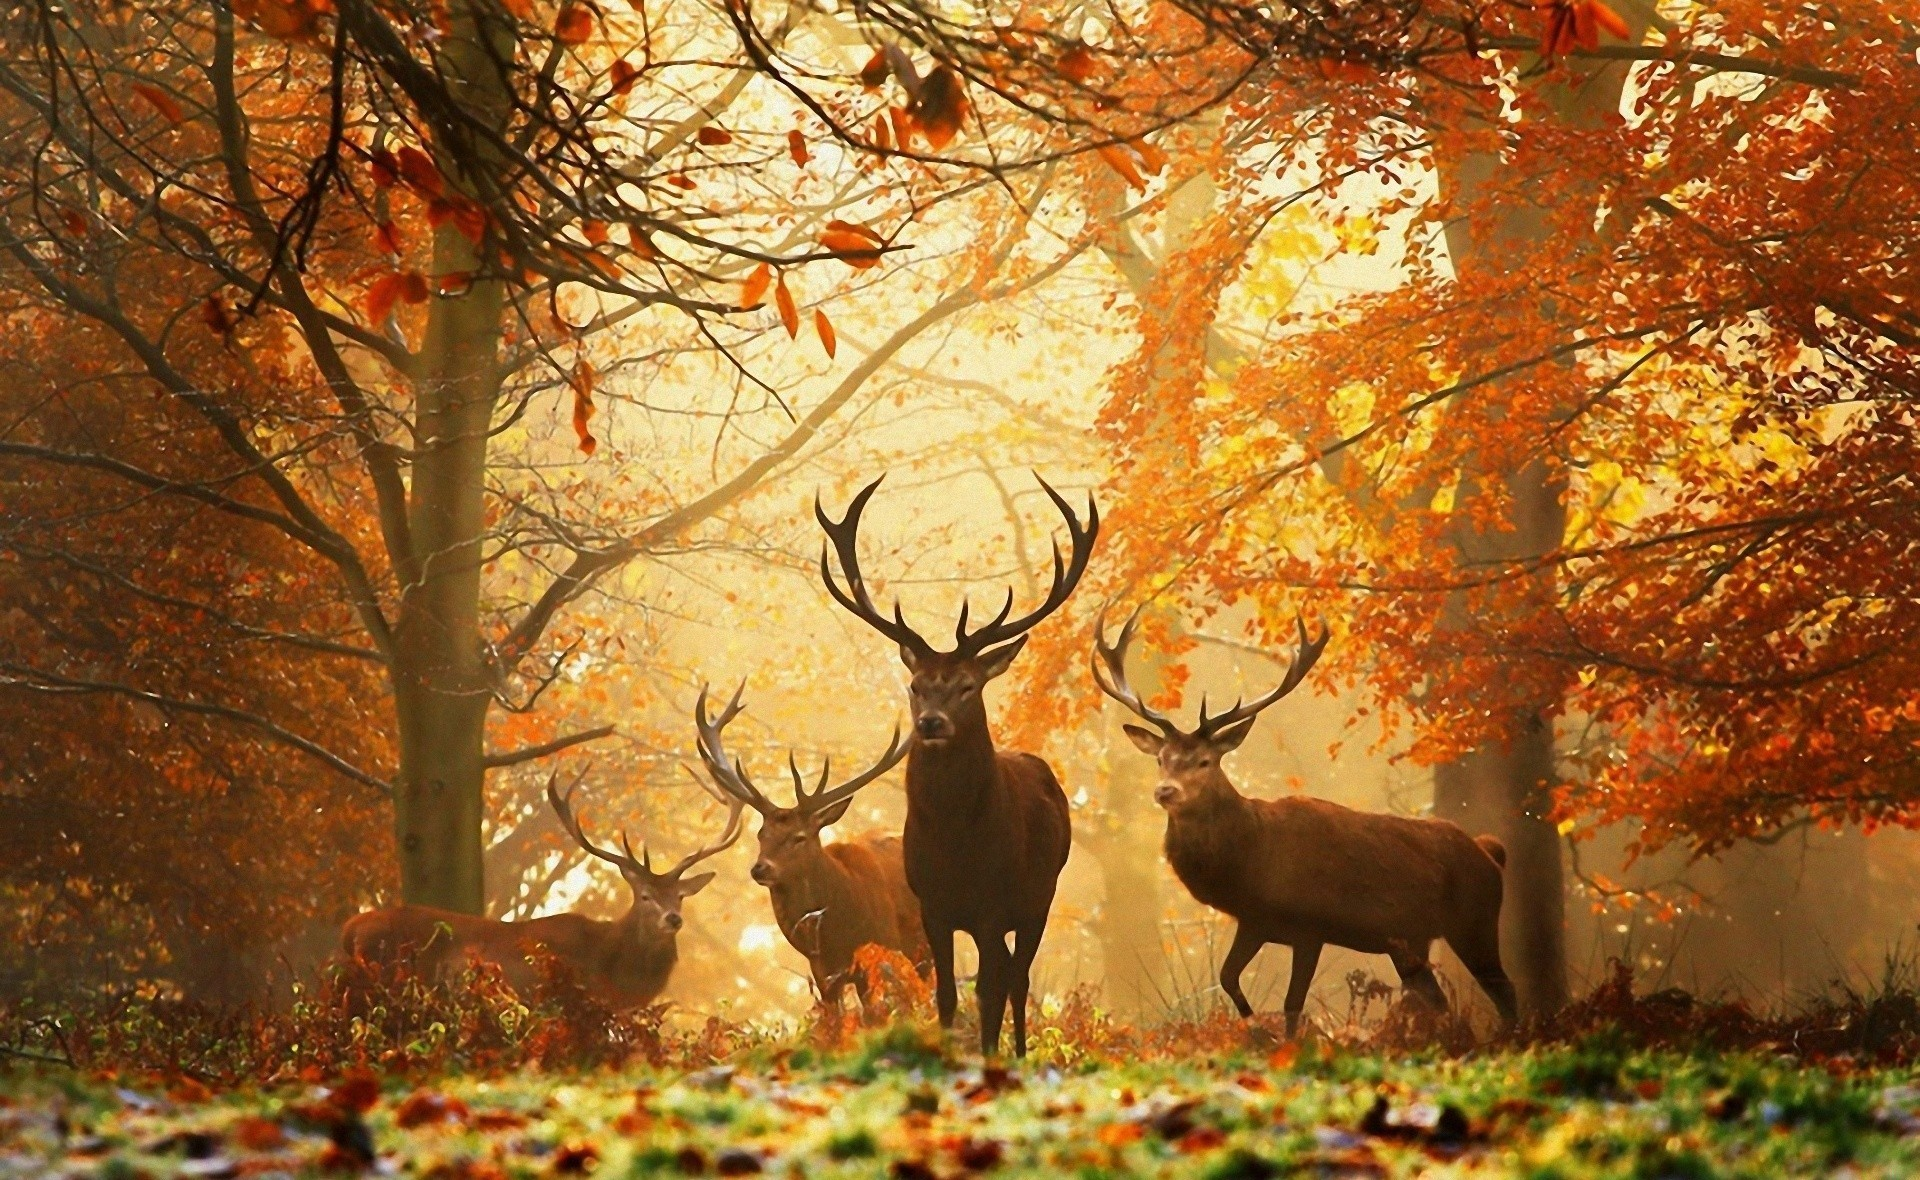 Fall with Animal Android HD Wallpapers 4025 - Amazing Wallpaperz